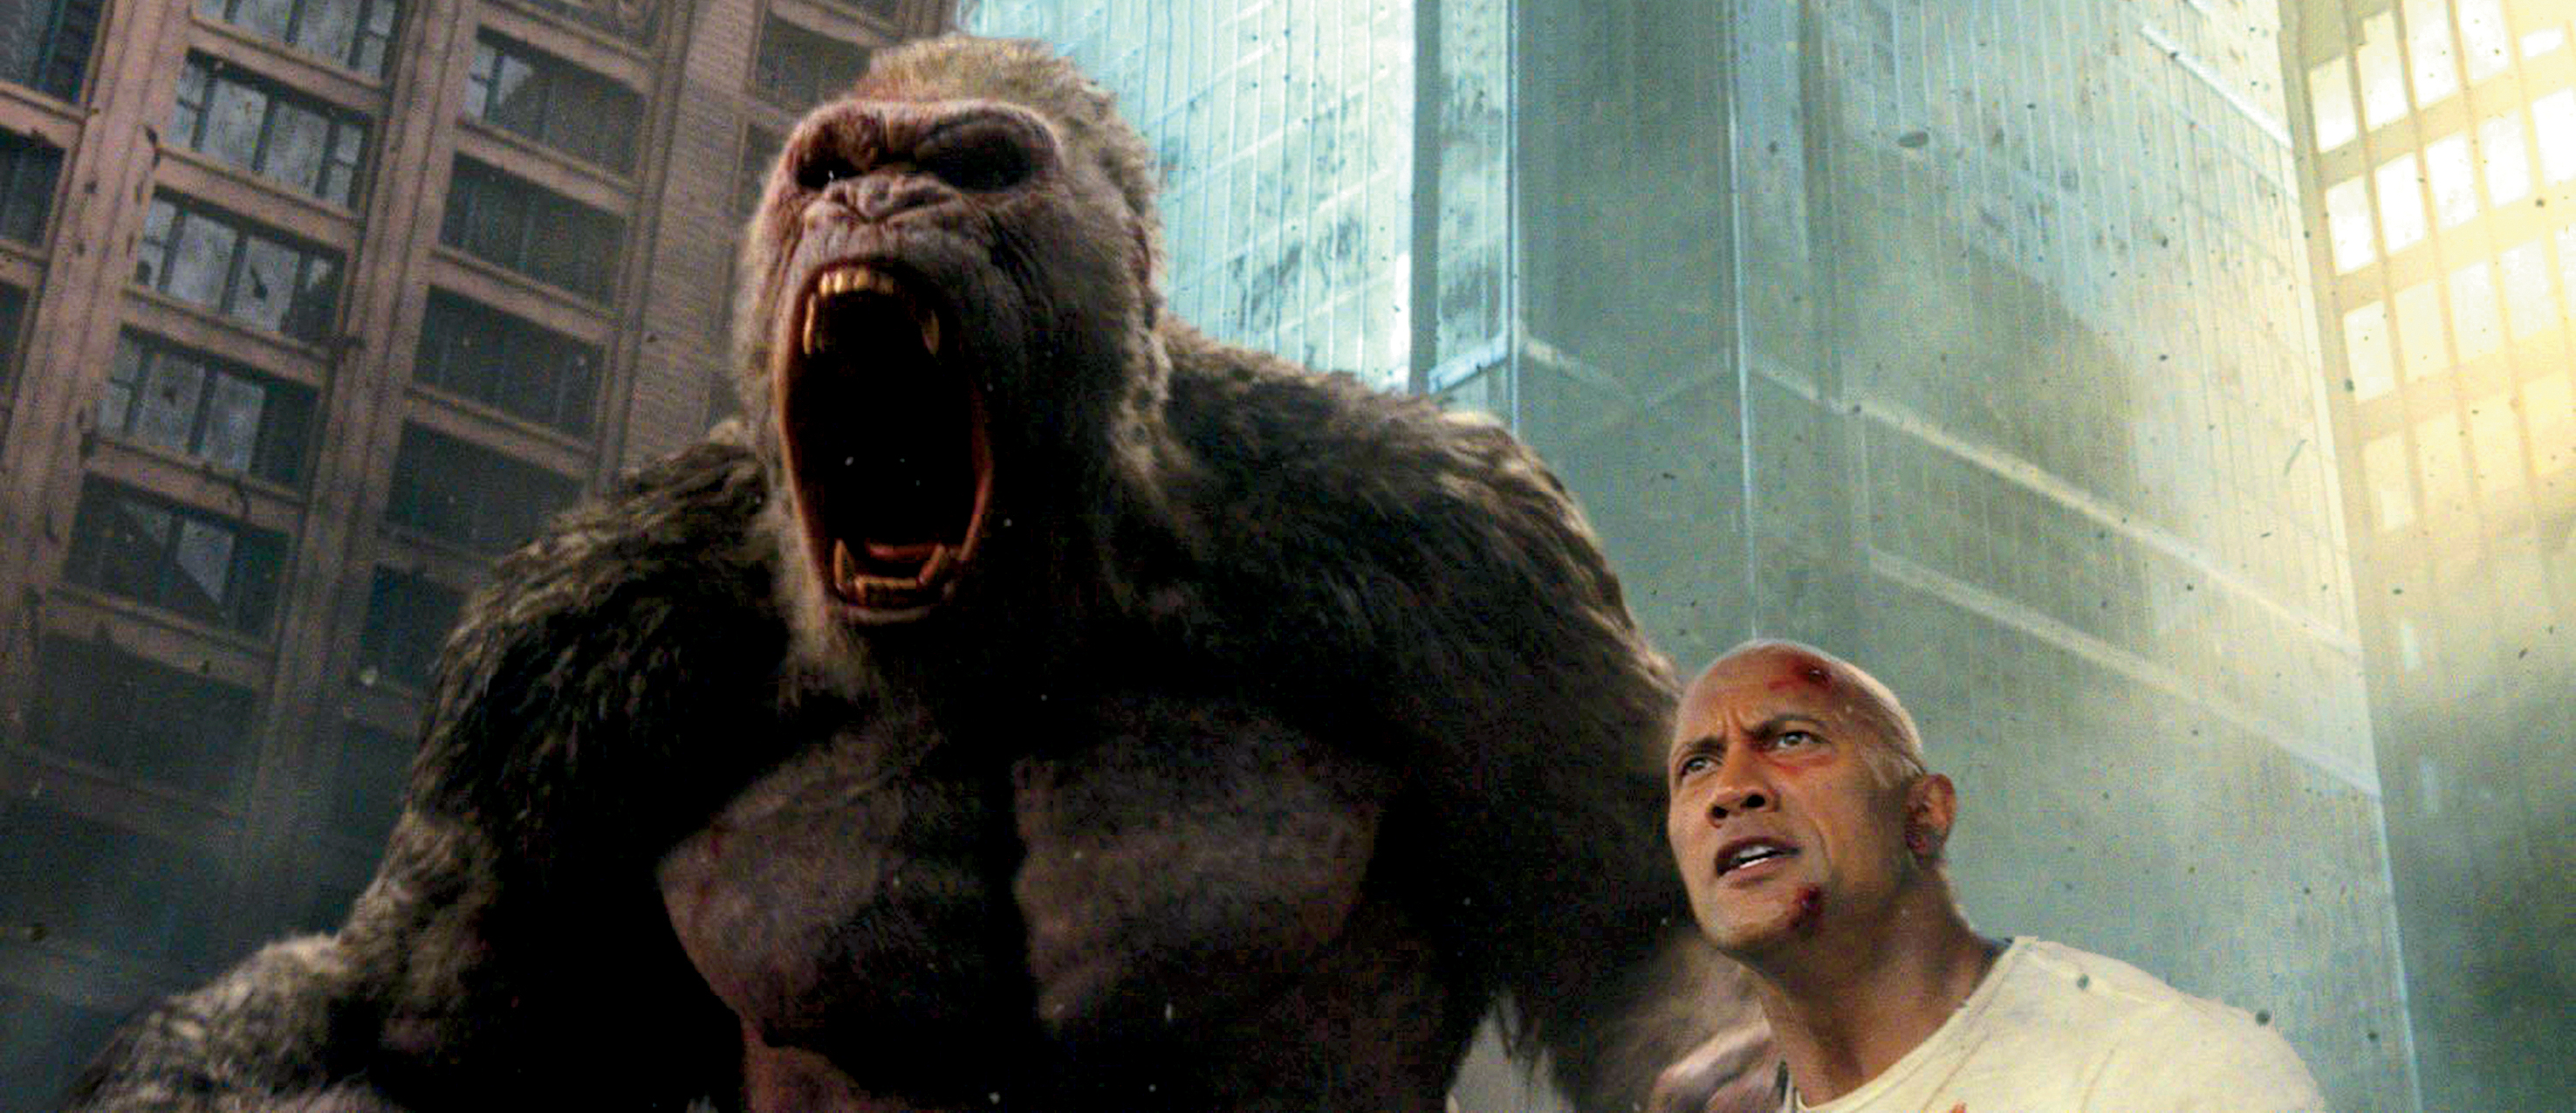 """Dwayne """"the Rock"""" Johnson saving the day in """"Rampage"""" movie."""